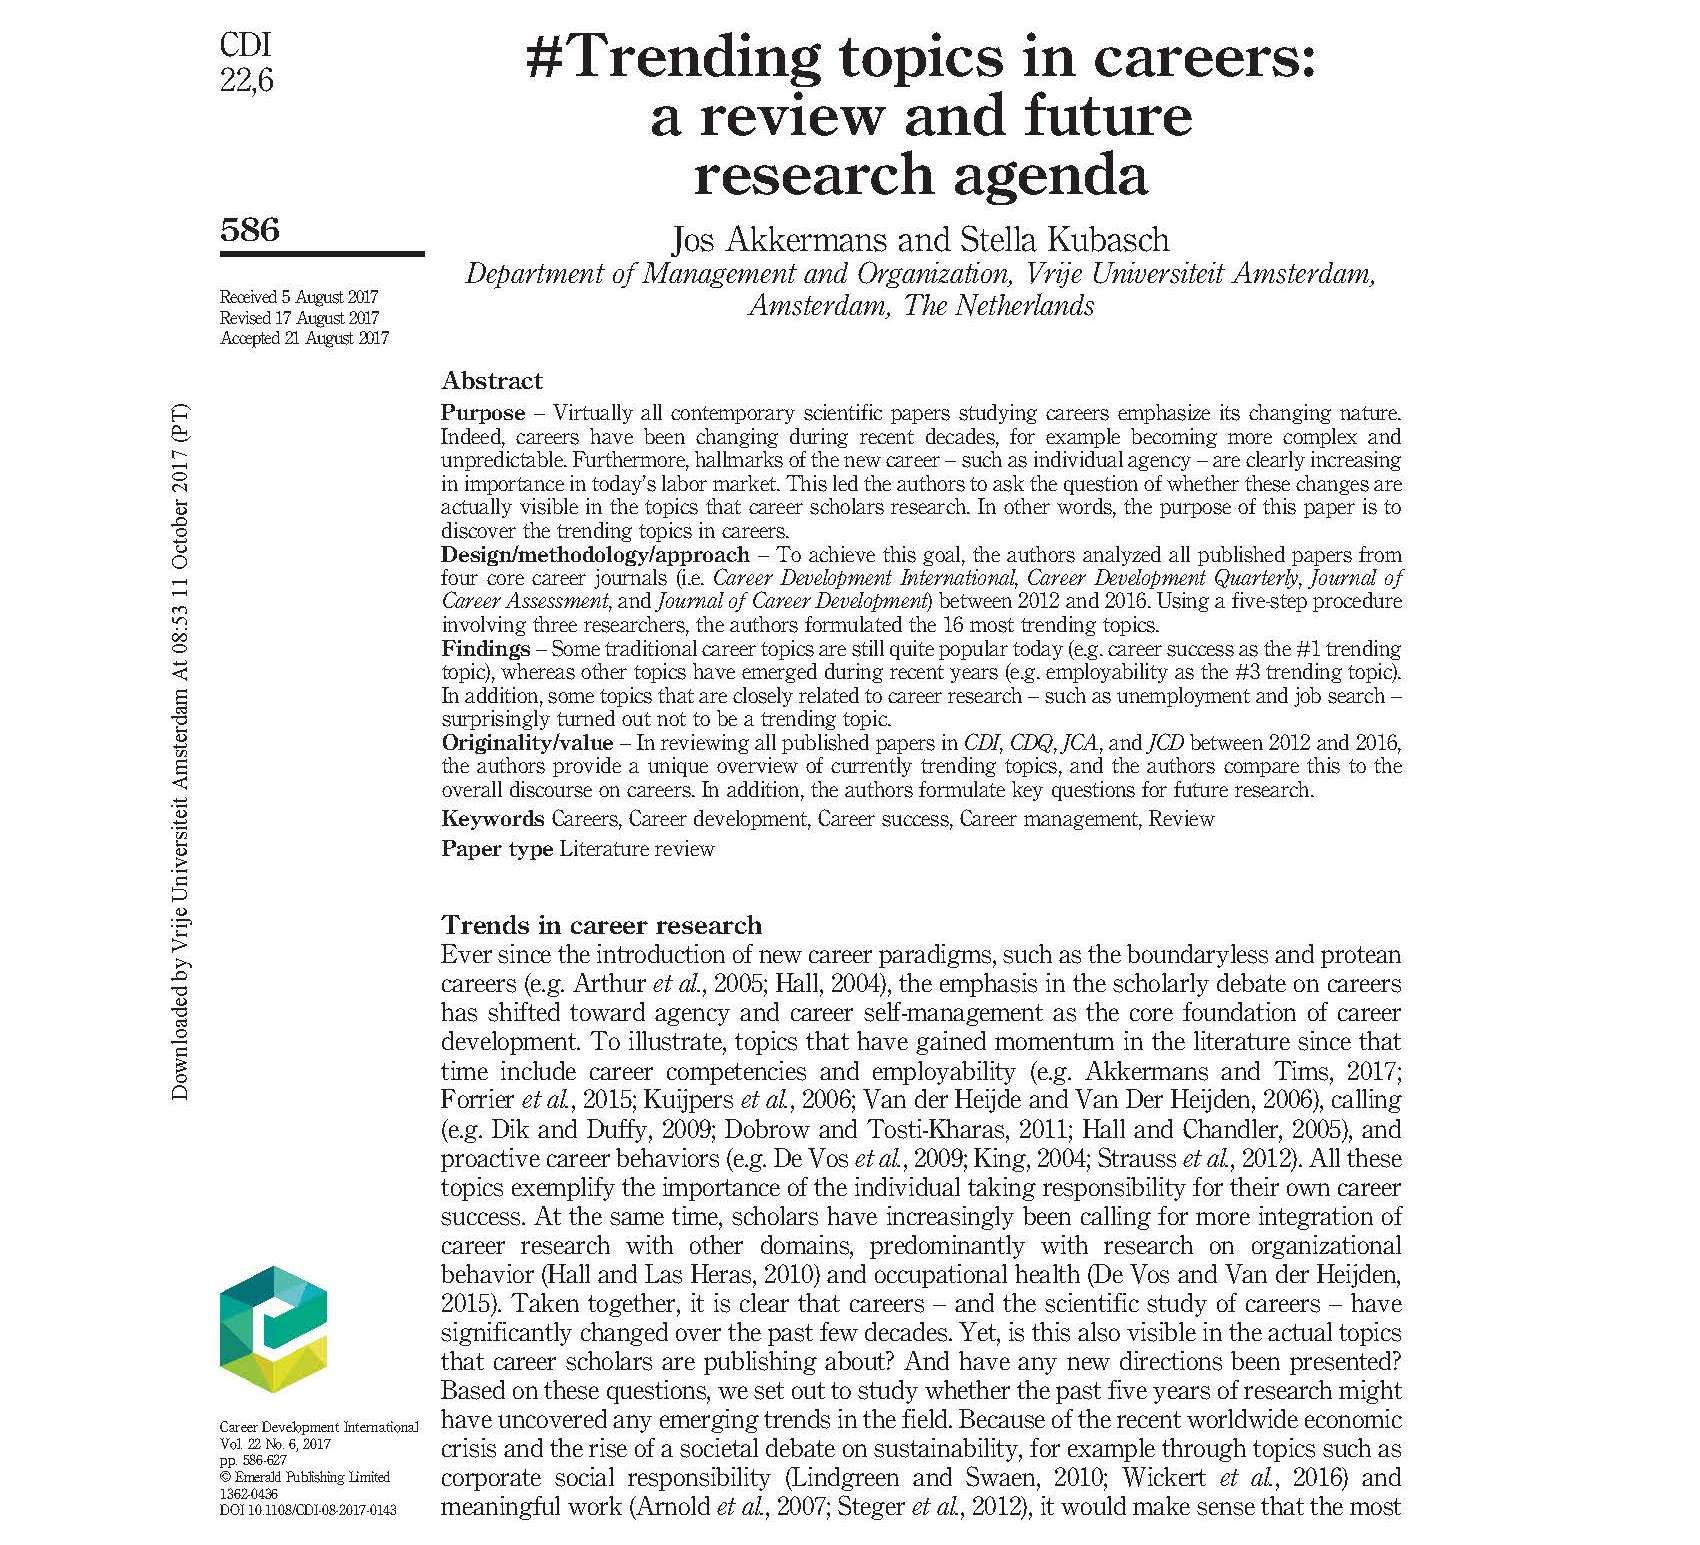 022 59e096d33a29650001209782 1620 20akkermans202620kubasch20201720 20trending20topics20in20careers Research Paper Topics For Impressive Papers In Educational Management Psychology High School Students College Full